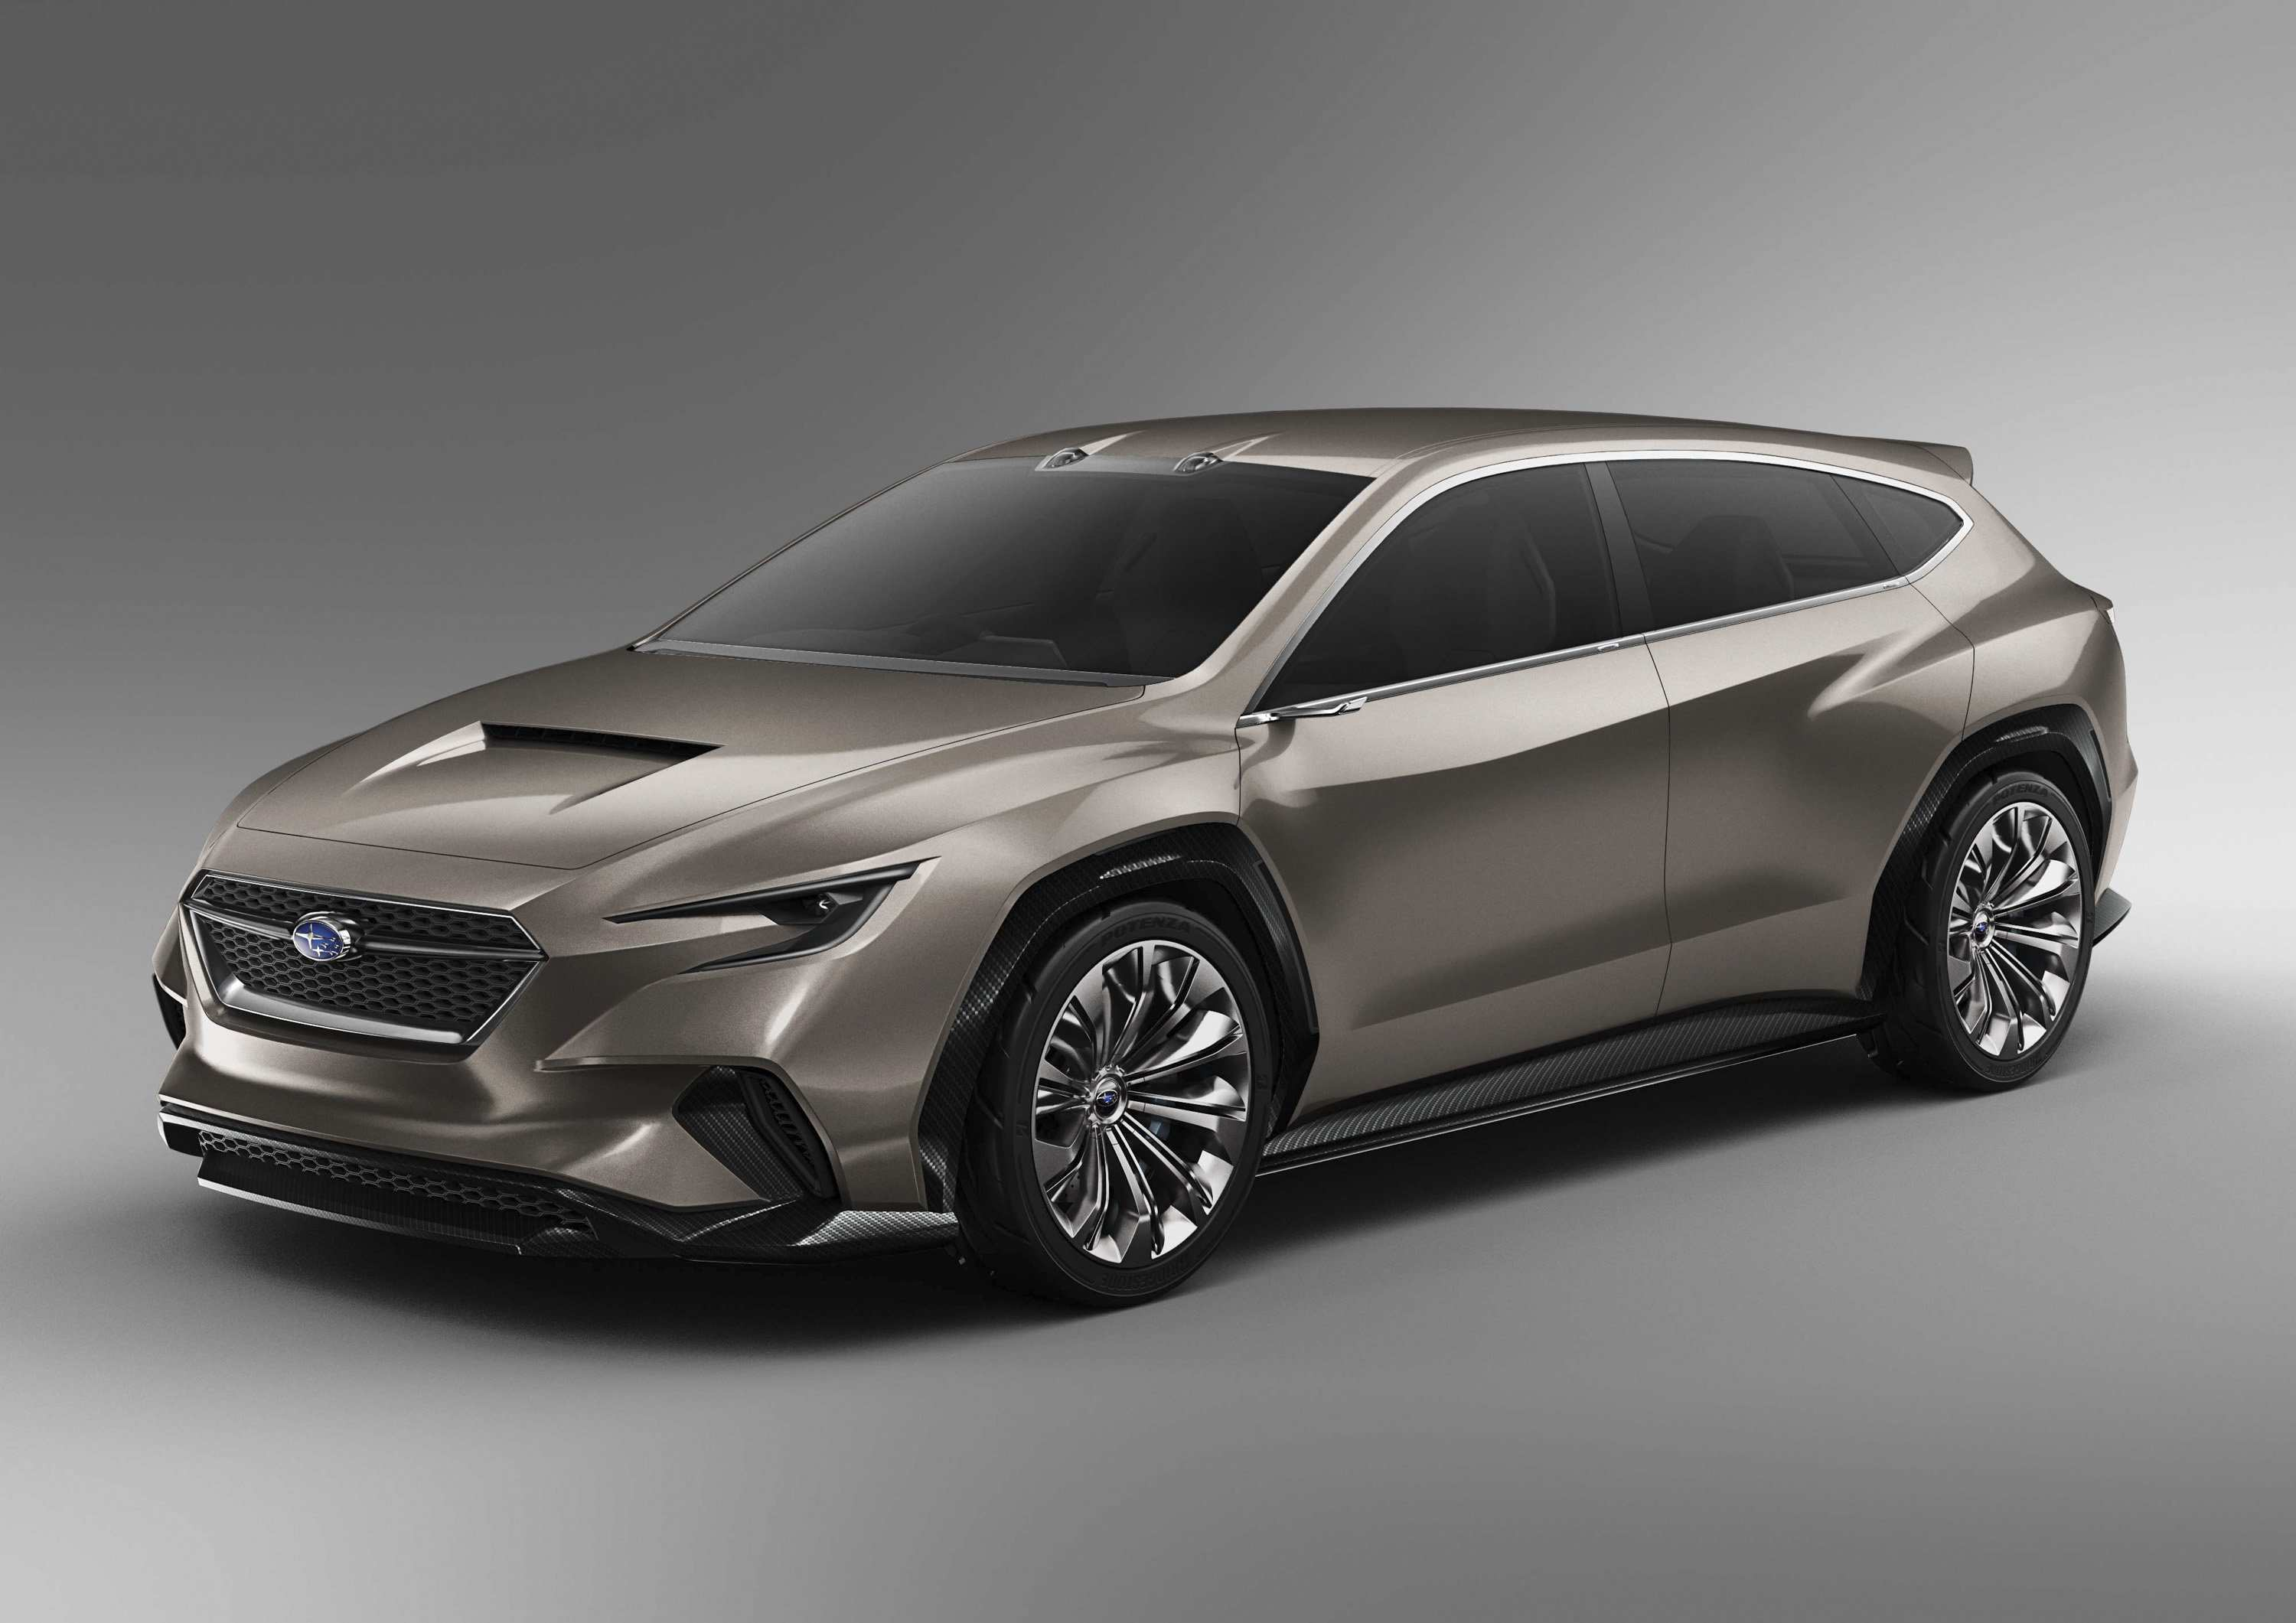 81 All New 2020 Subaru Outback Concept Pricing with 2020 Subaru Outback Concept